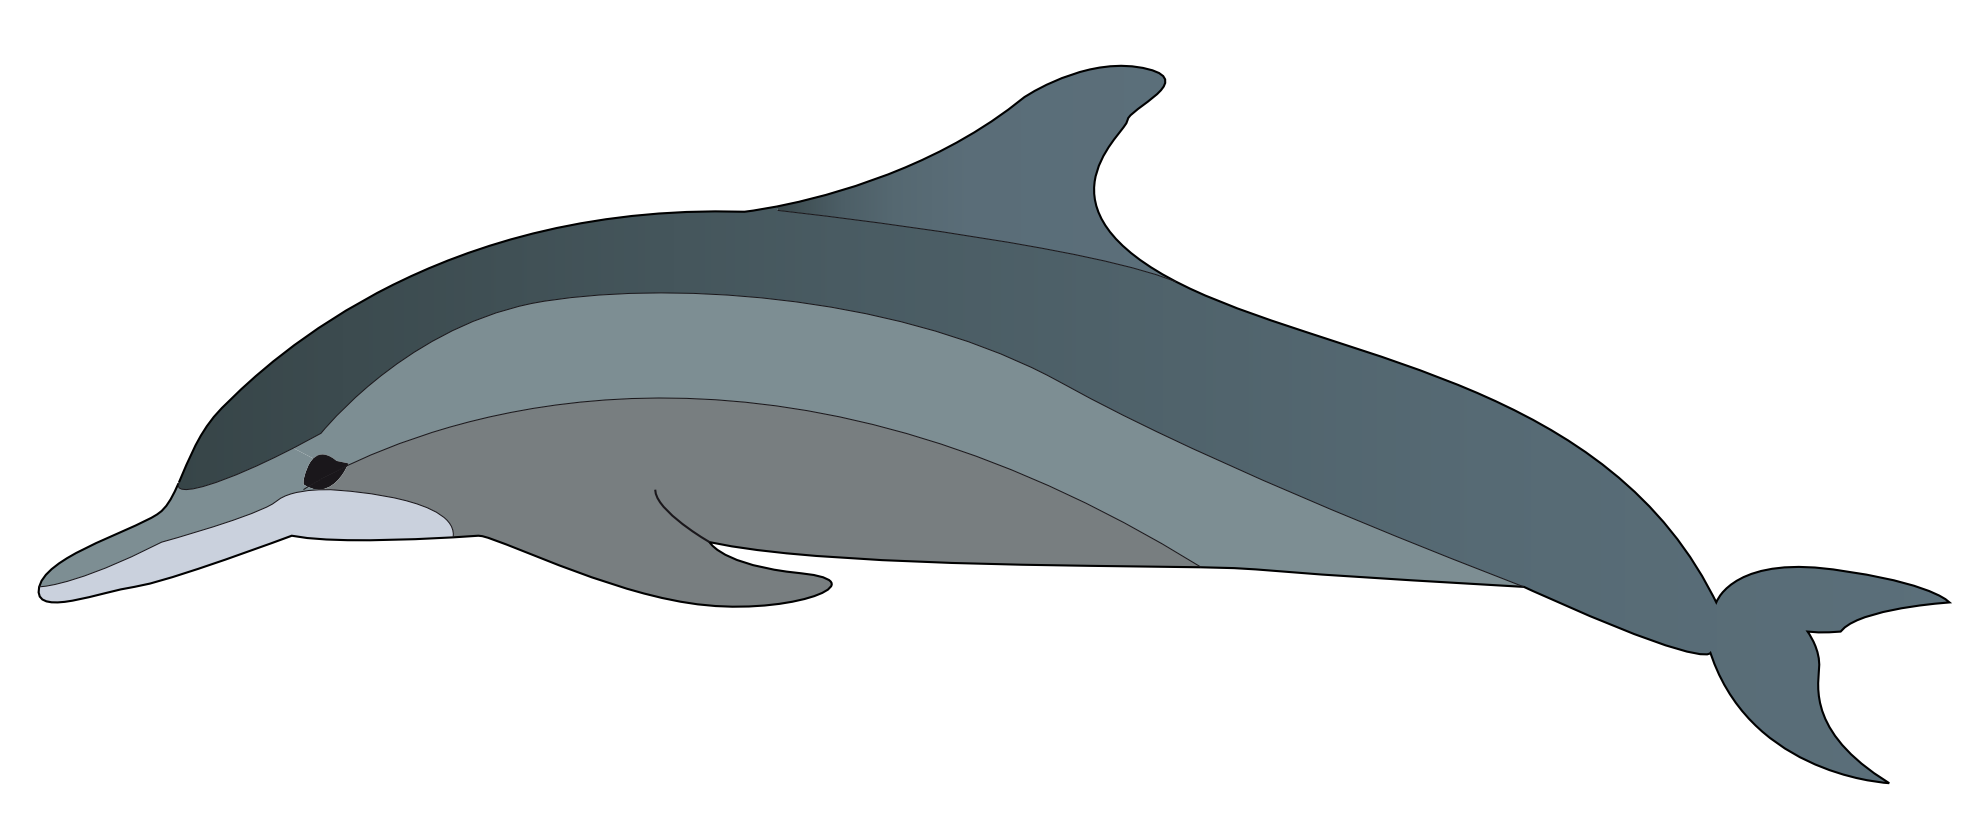 Dolphin Clipart Dolphin 1979px Png-Dolphin Clipart Dolphin 1979px Png-10